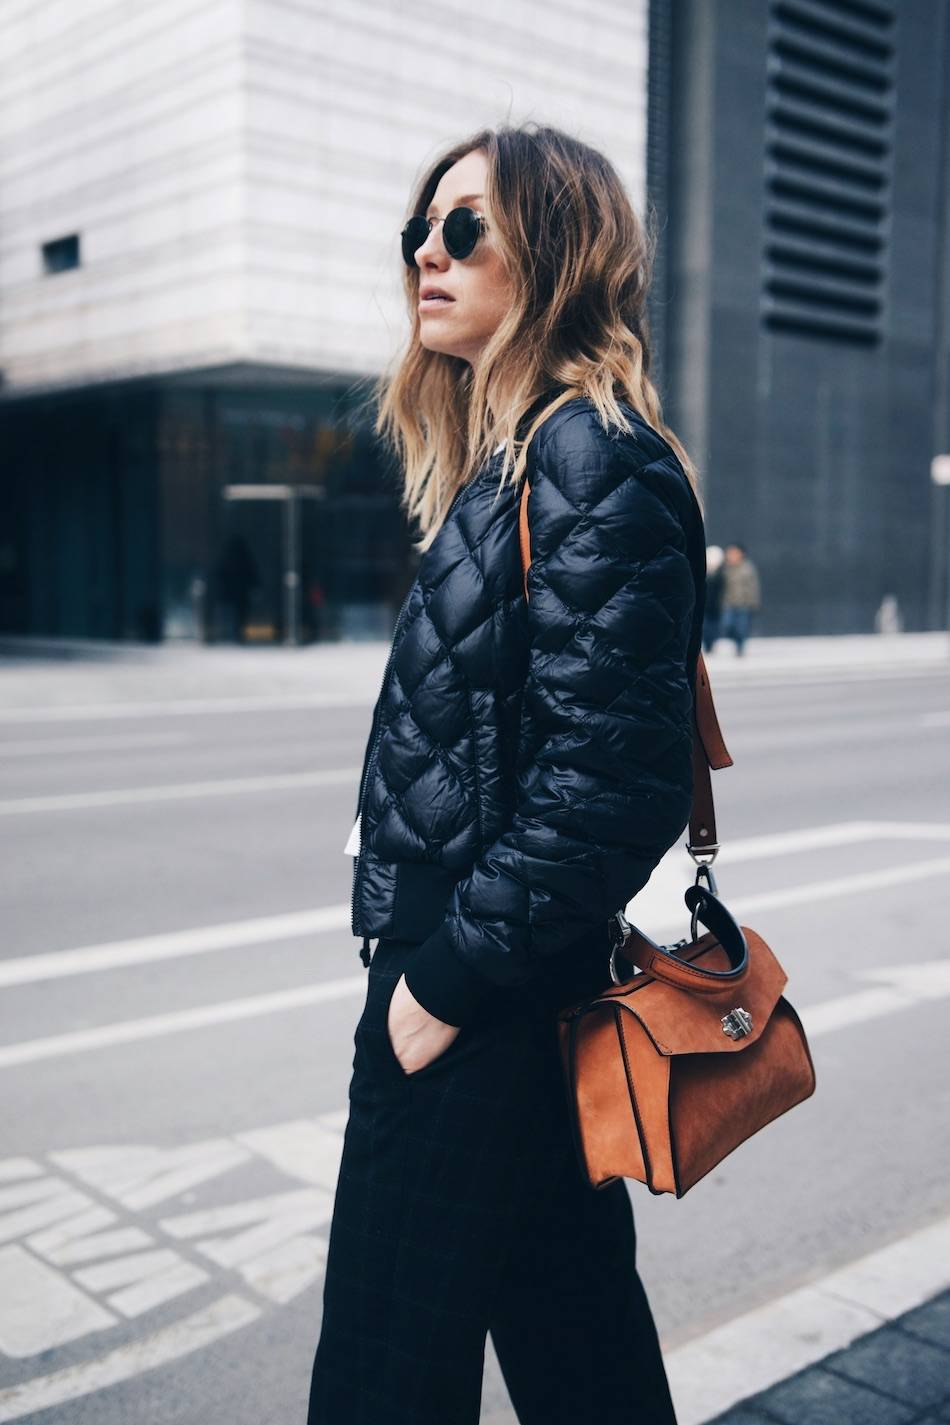 Style and beauty blogger Jill Lansky of The August Diaries on morning wellness routine in athletic trend 2017 bomber jacket, Proenza Schouler Hava bag